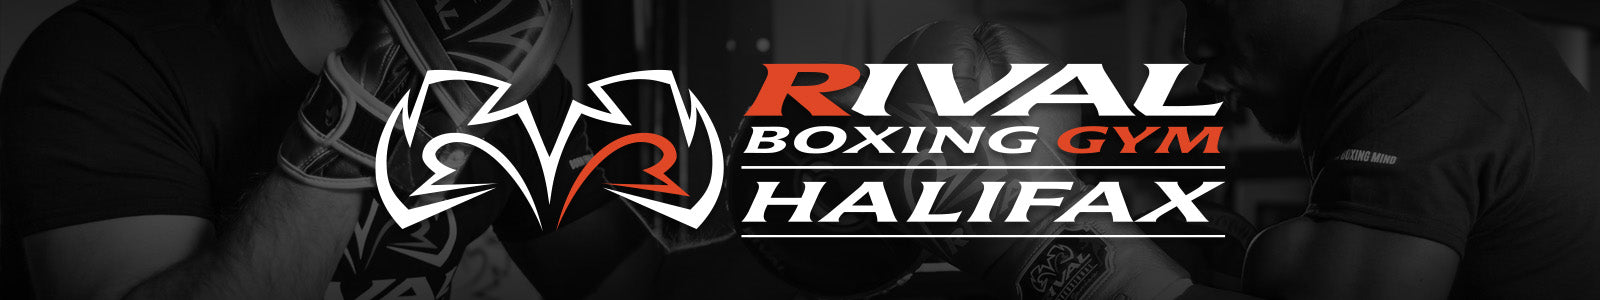 rival-boxing-gym-halifax